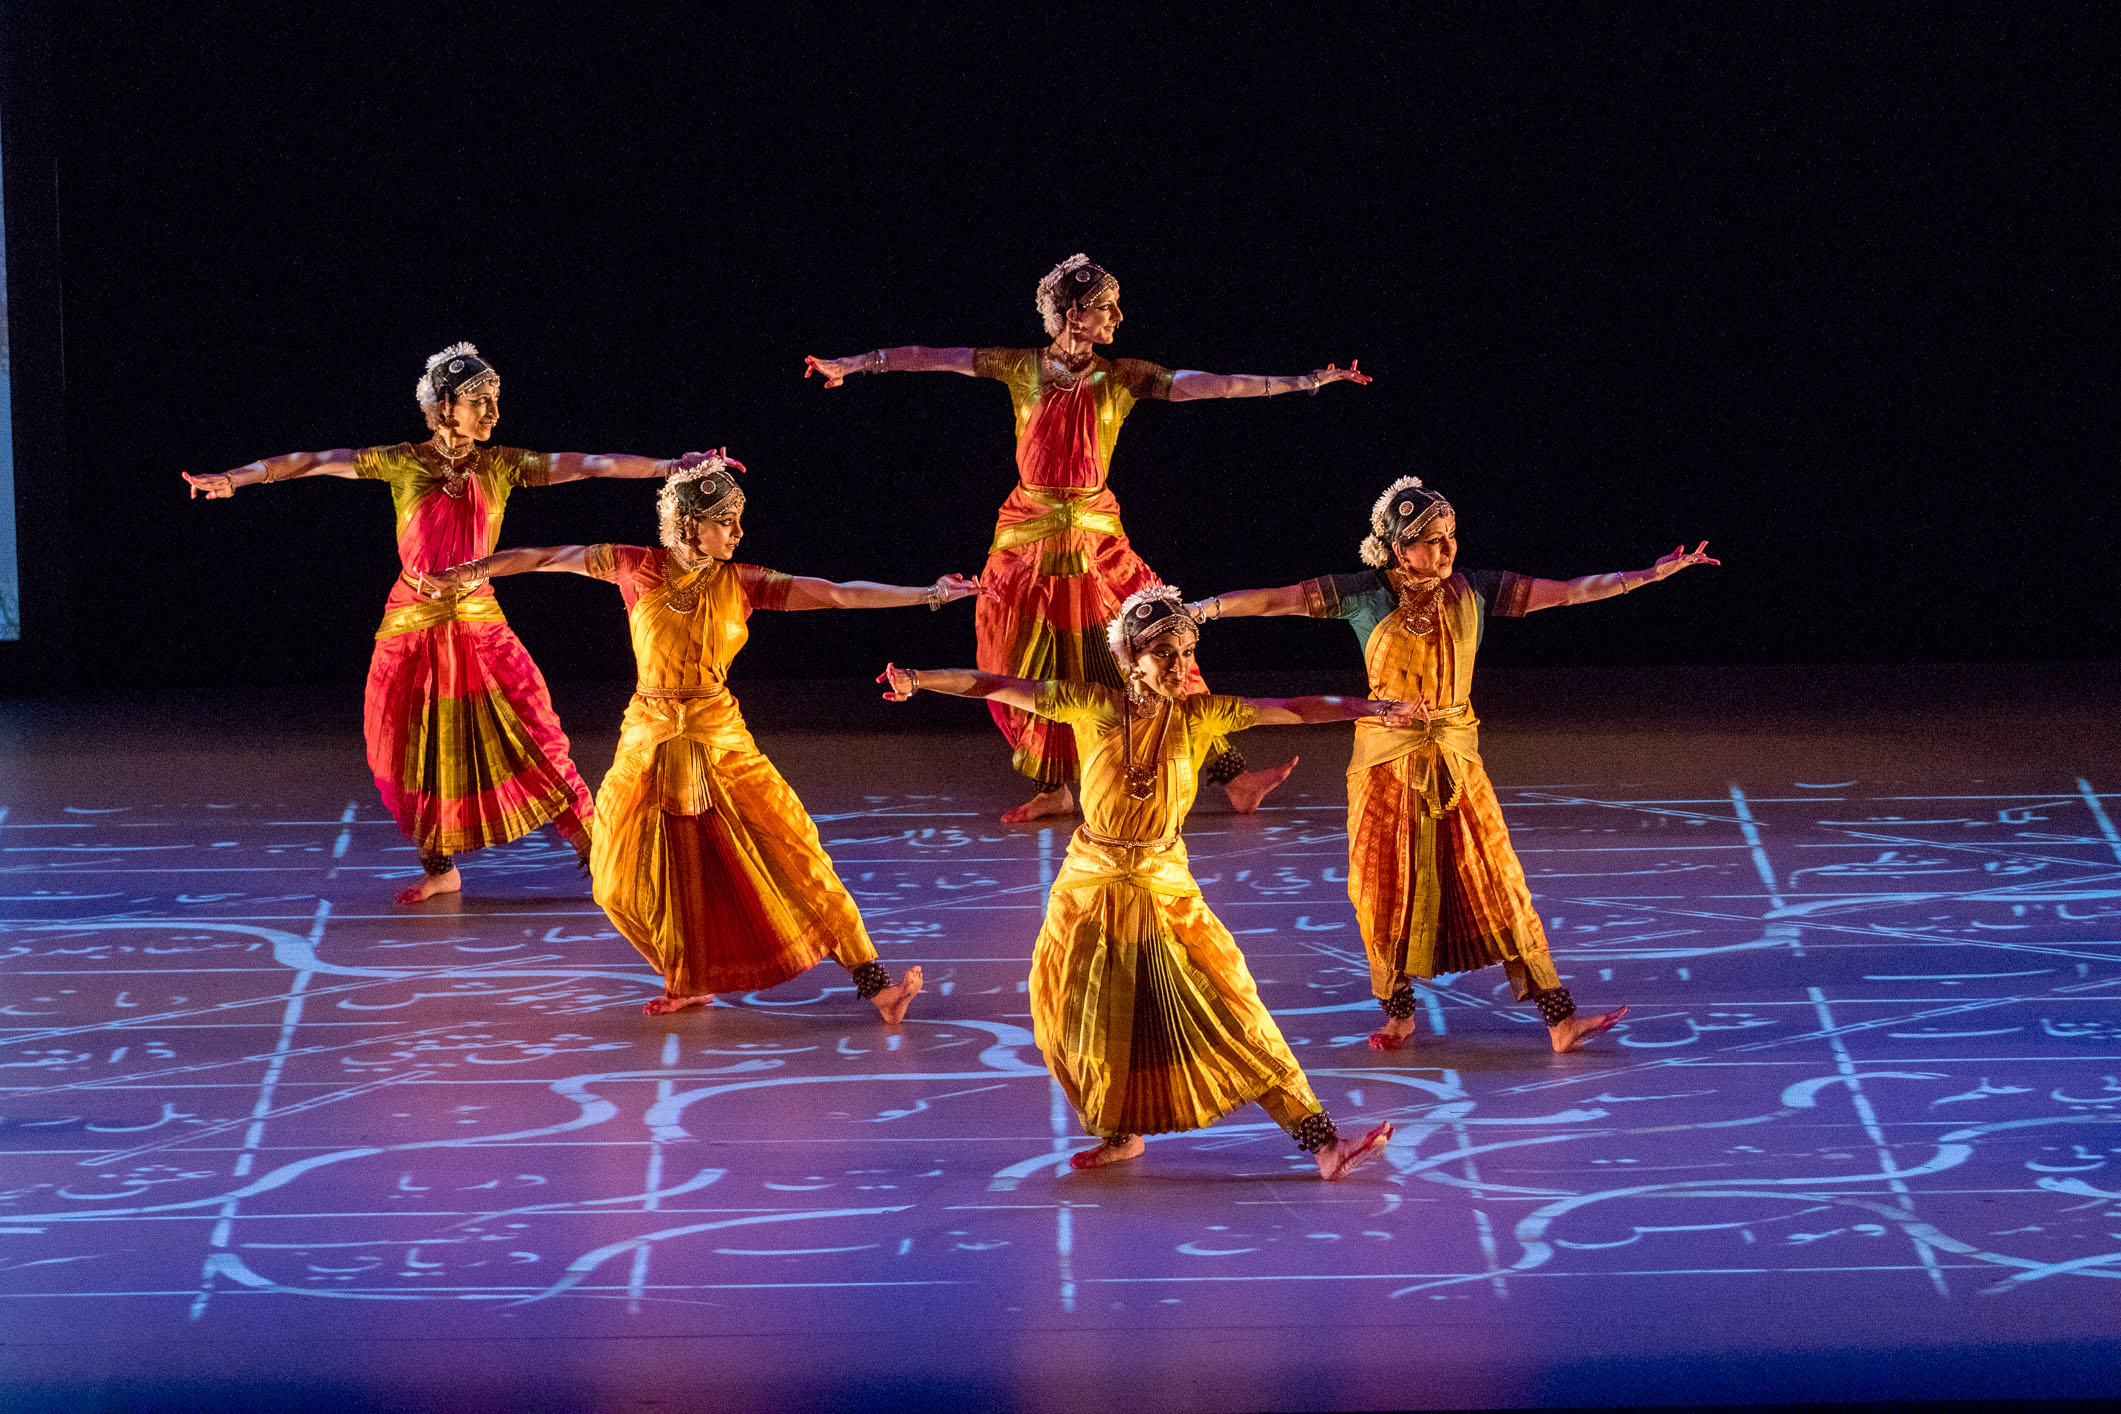 MASTER CLASS WITH RAGAMALA'S ARTISTIC DIRECTORS   Saturday, March 23 | 2:00-3:30pm    Register Here!